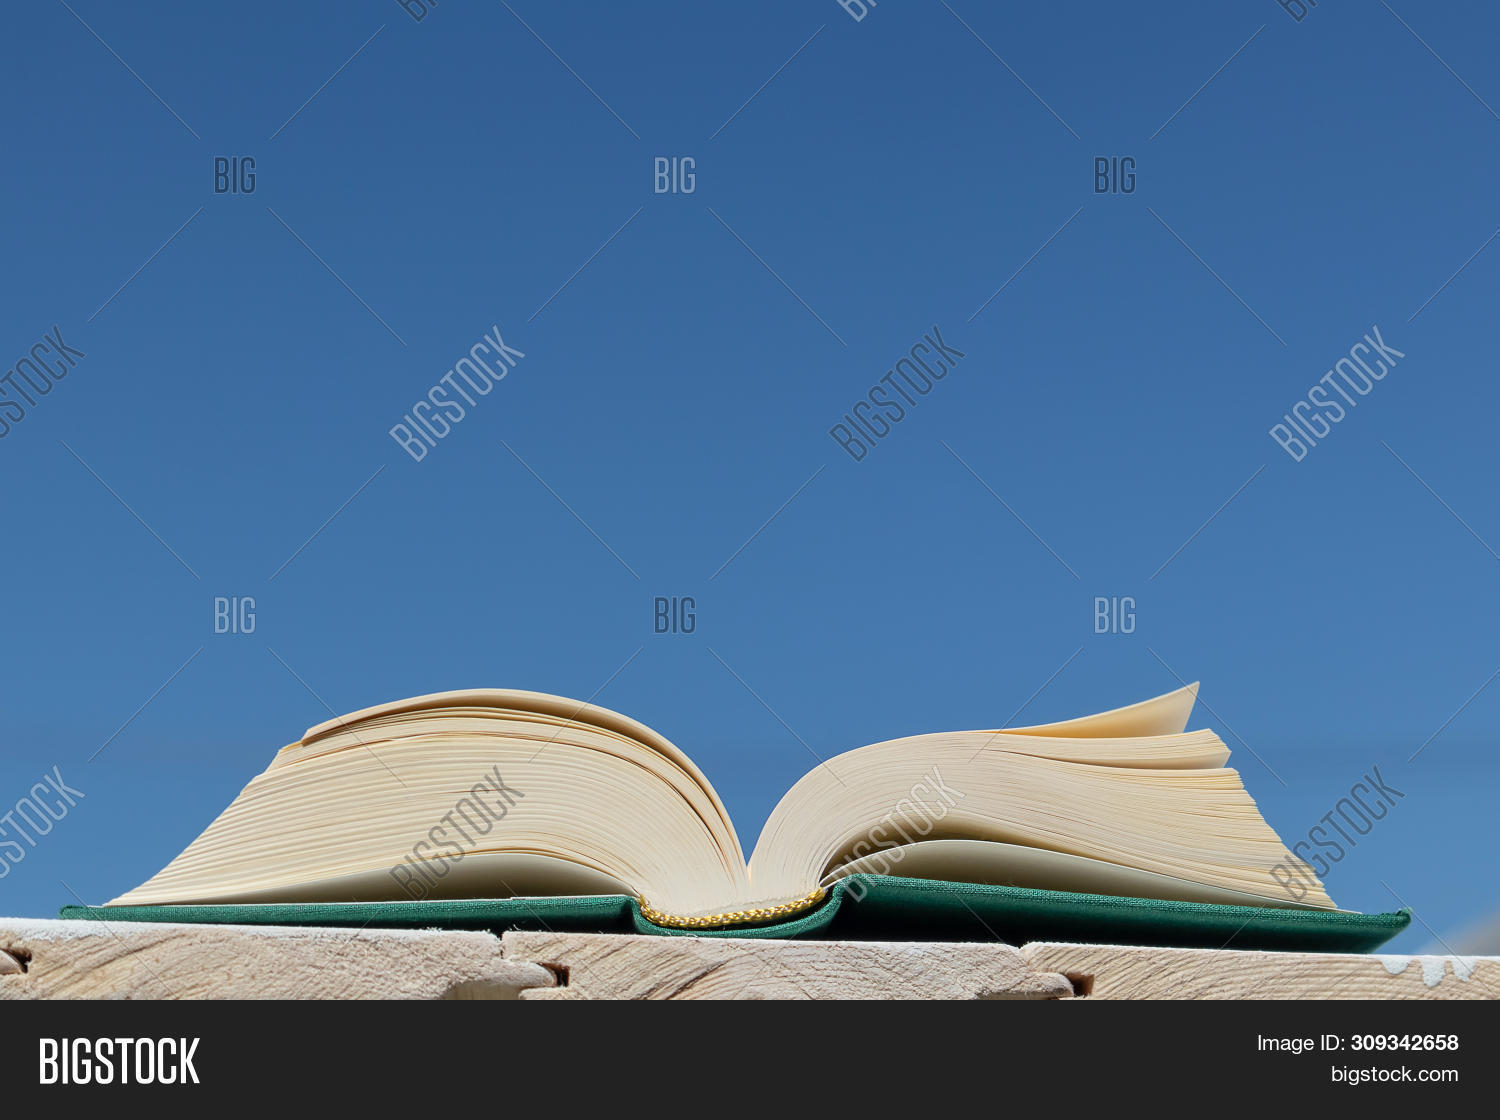 background,blackboard,blank,blue,book,business,clouds,concept,cover,design,document,education,environment,flying,grass,green,idea,information,isolated,knowledge,learn,library,light,literature,magic,motivate,nature,object,old,open,page,paper,read,school,sky,spring,stack,story,study,summer,sun,sunlight,text,textbook,white,wisdom